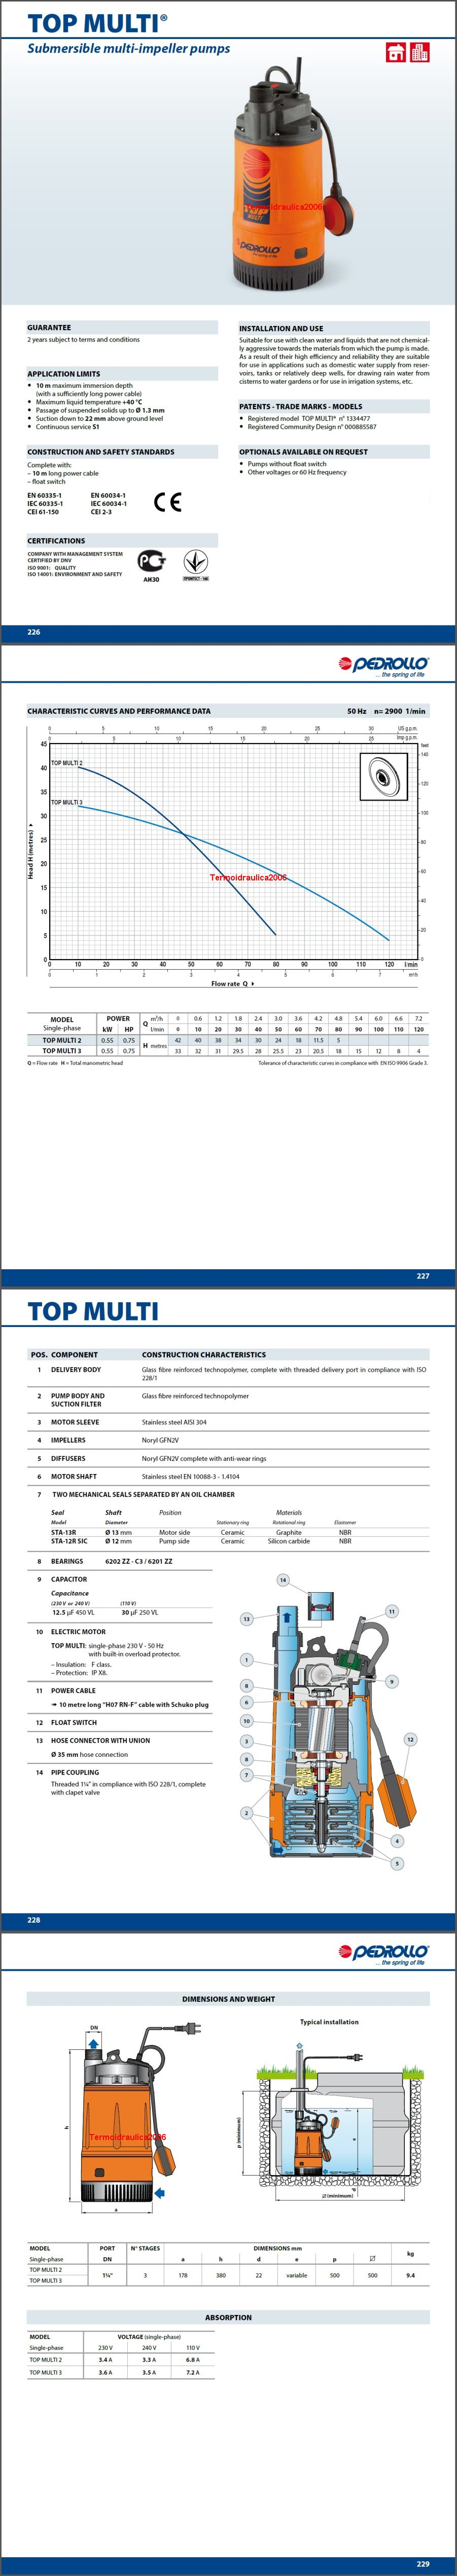 Data sheet Pedrollo TOP MULTI 2